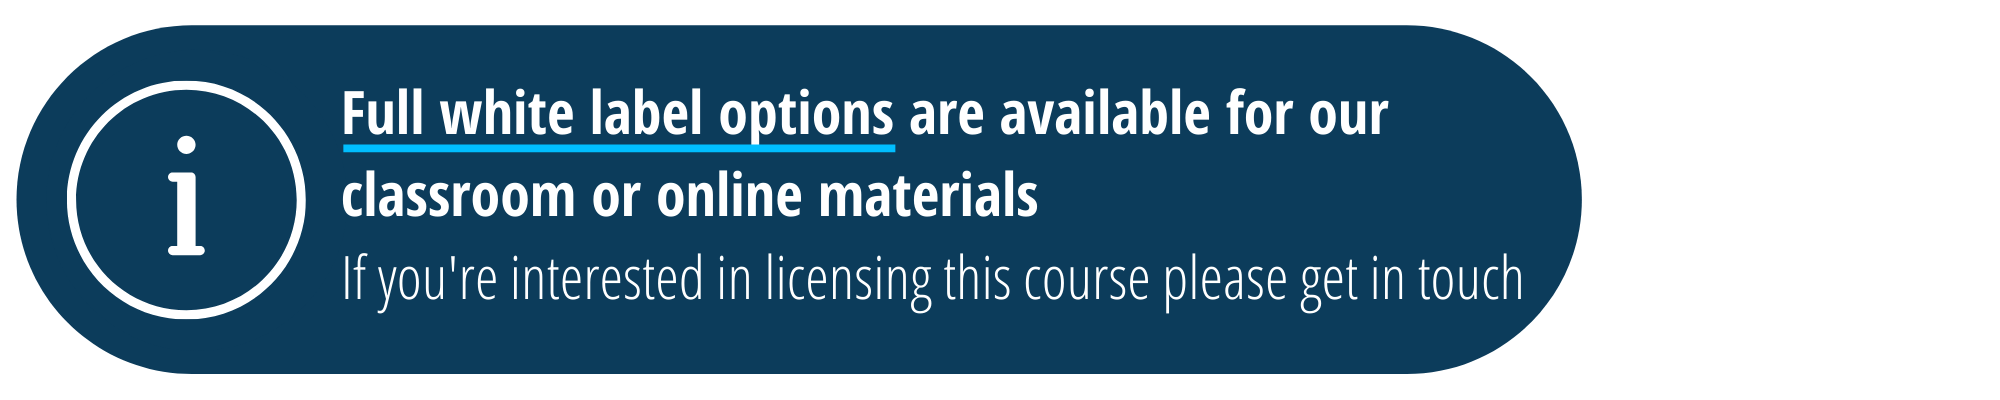 Enquire about licensing this course